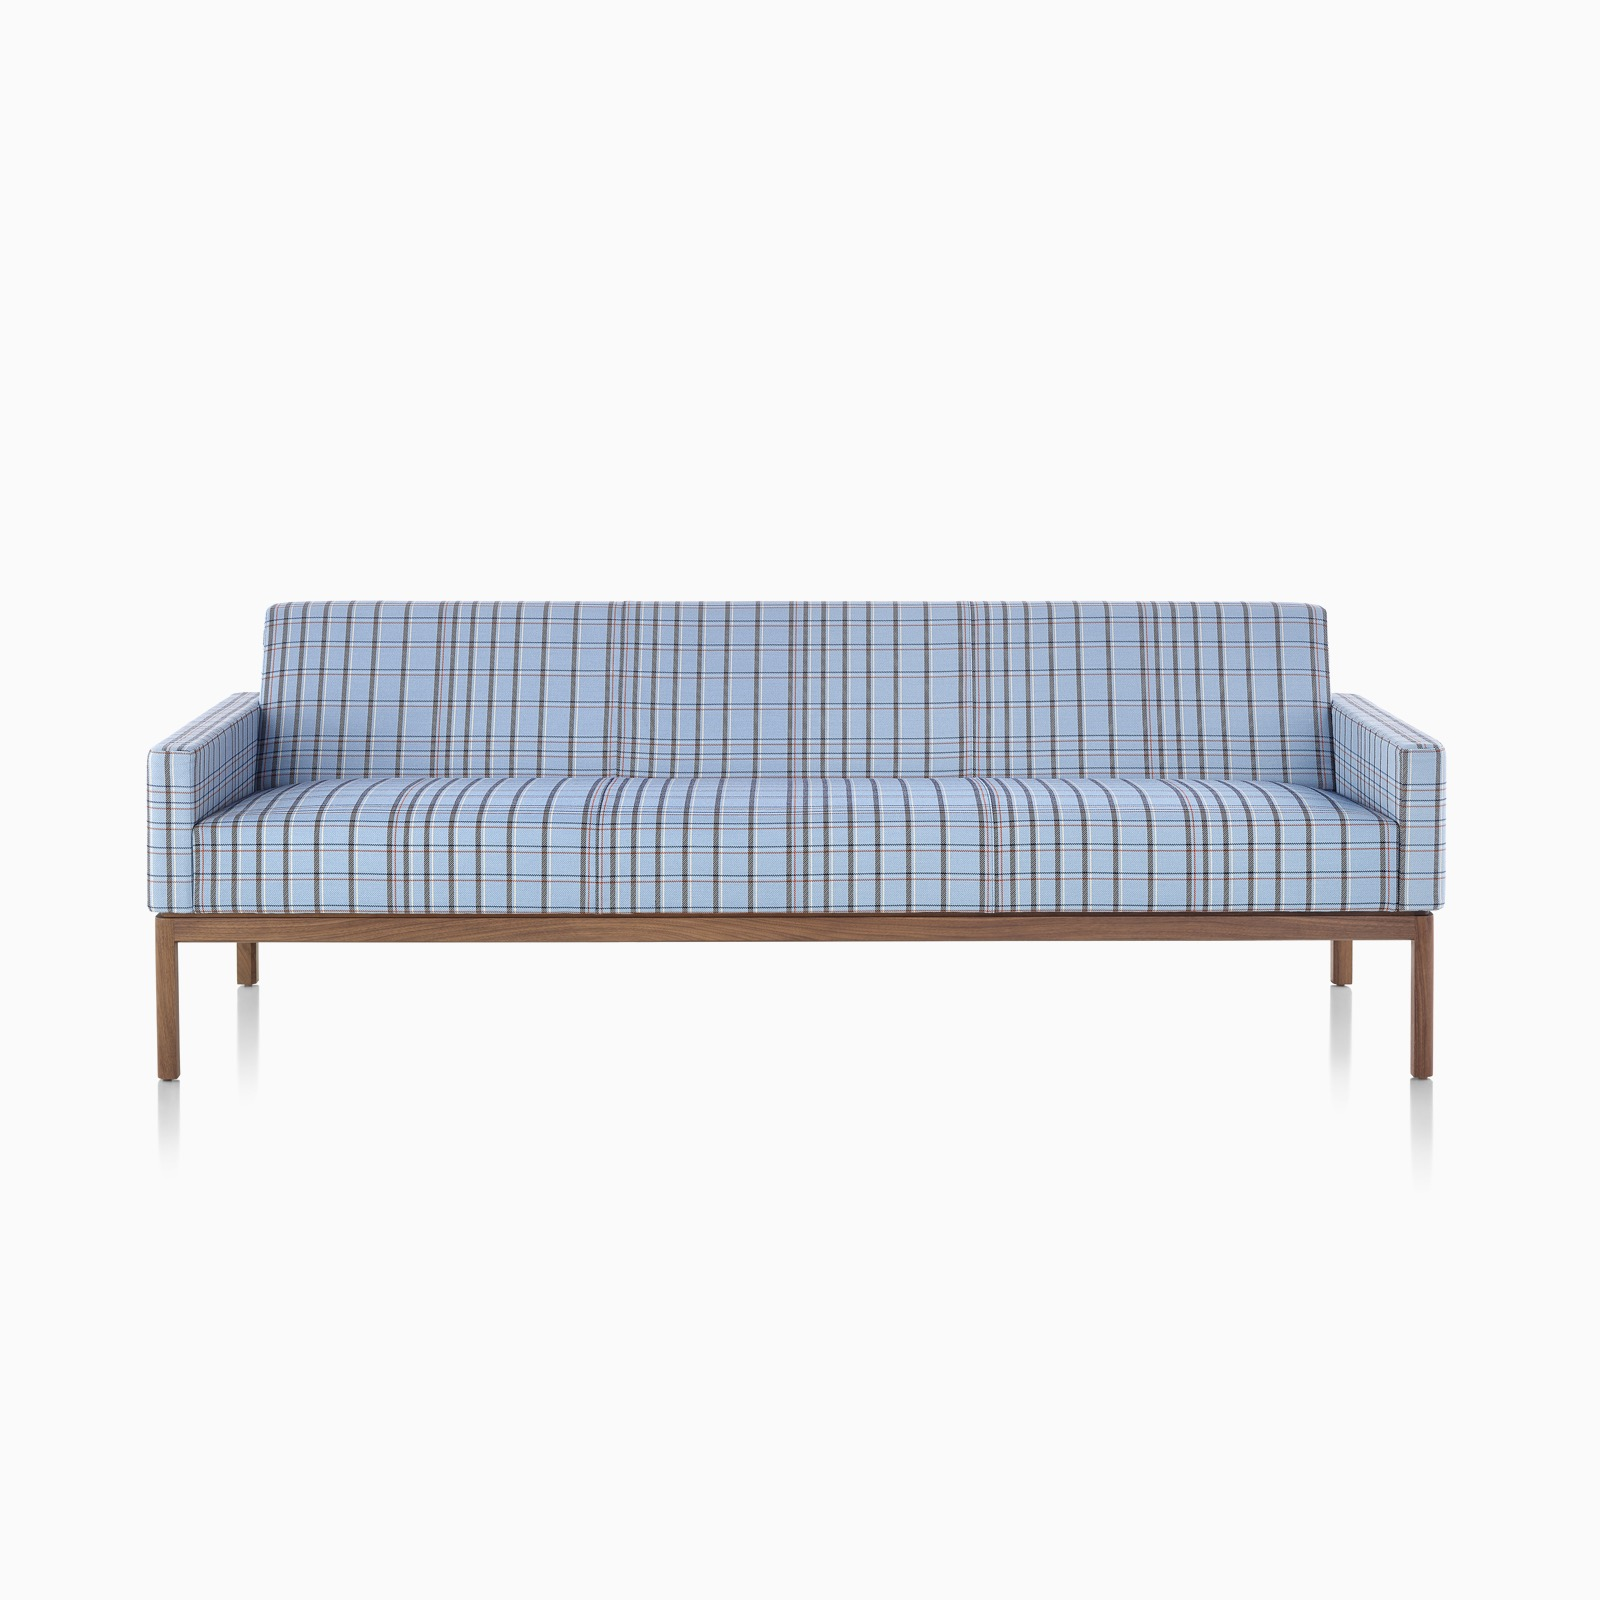 A Wood Base Sofa in Twill Plaid Natier Blue.